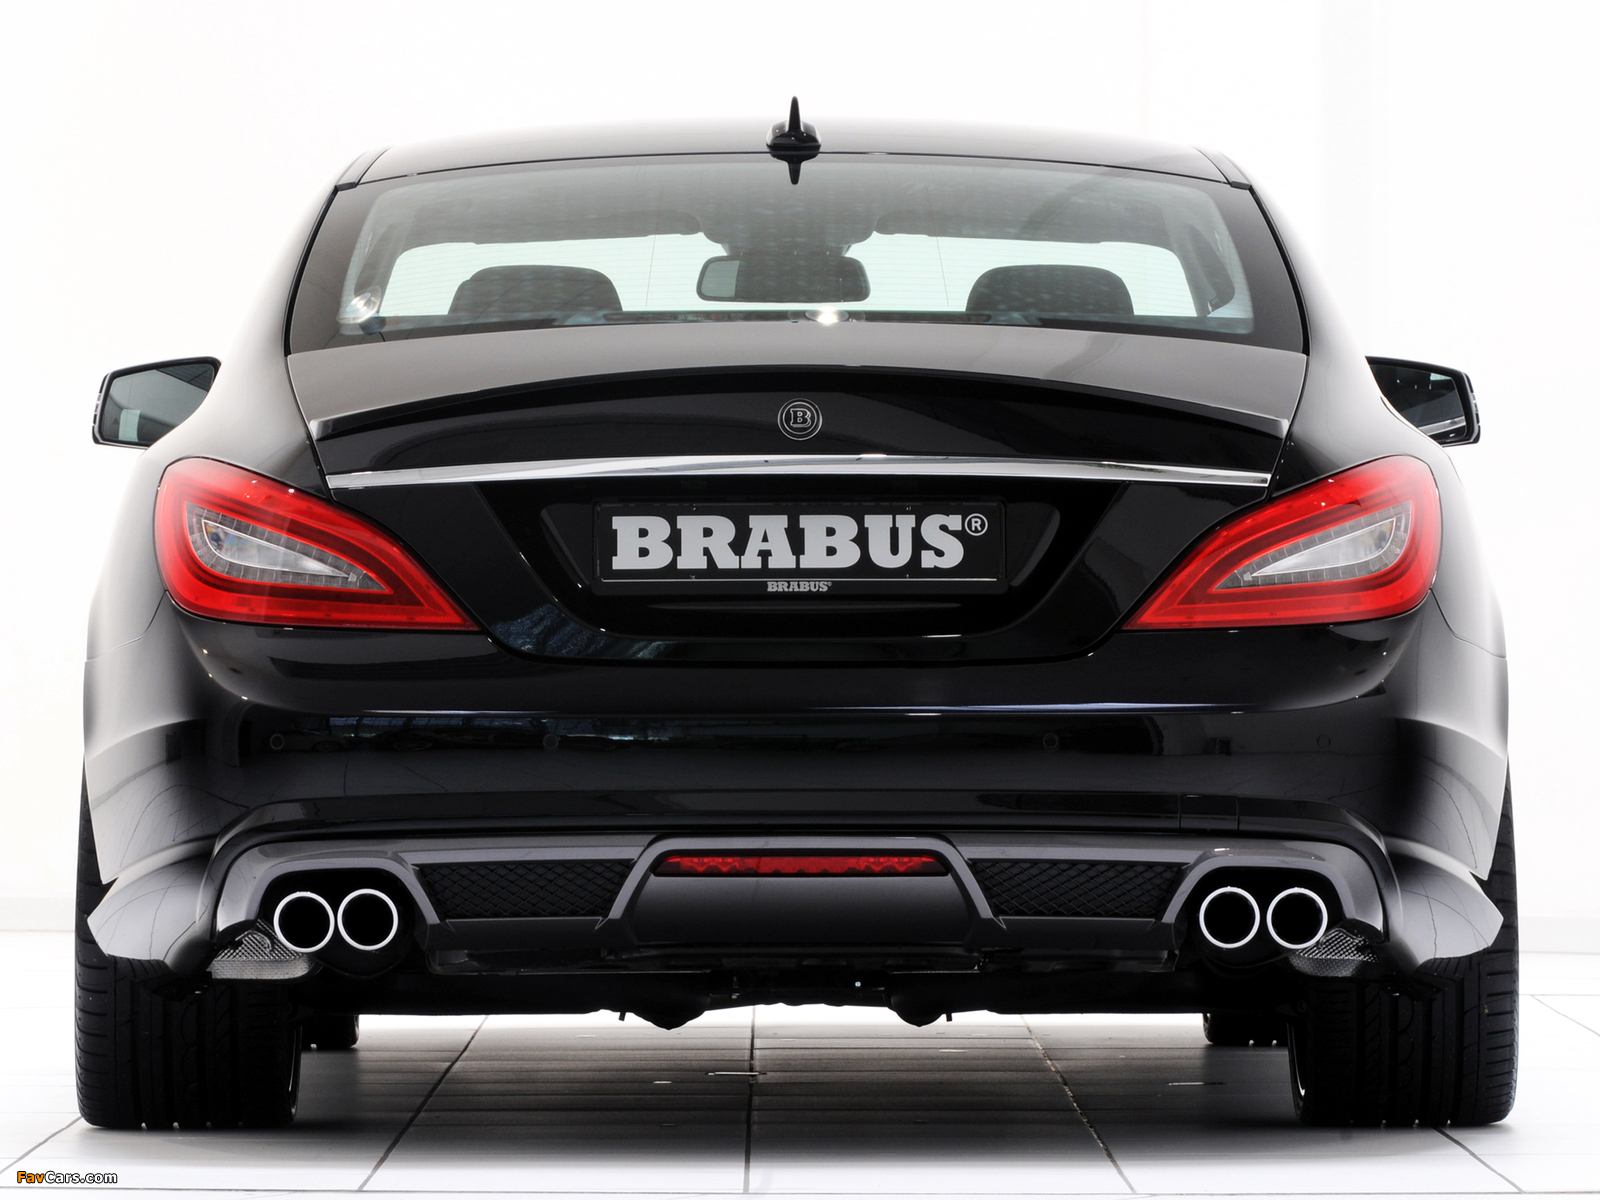 Brabus Mercedes-Benz CLS AMG Sports Package (C218) 2011 wallpapers (1600 x 1200)